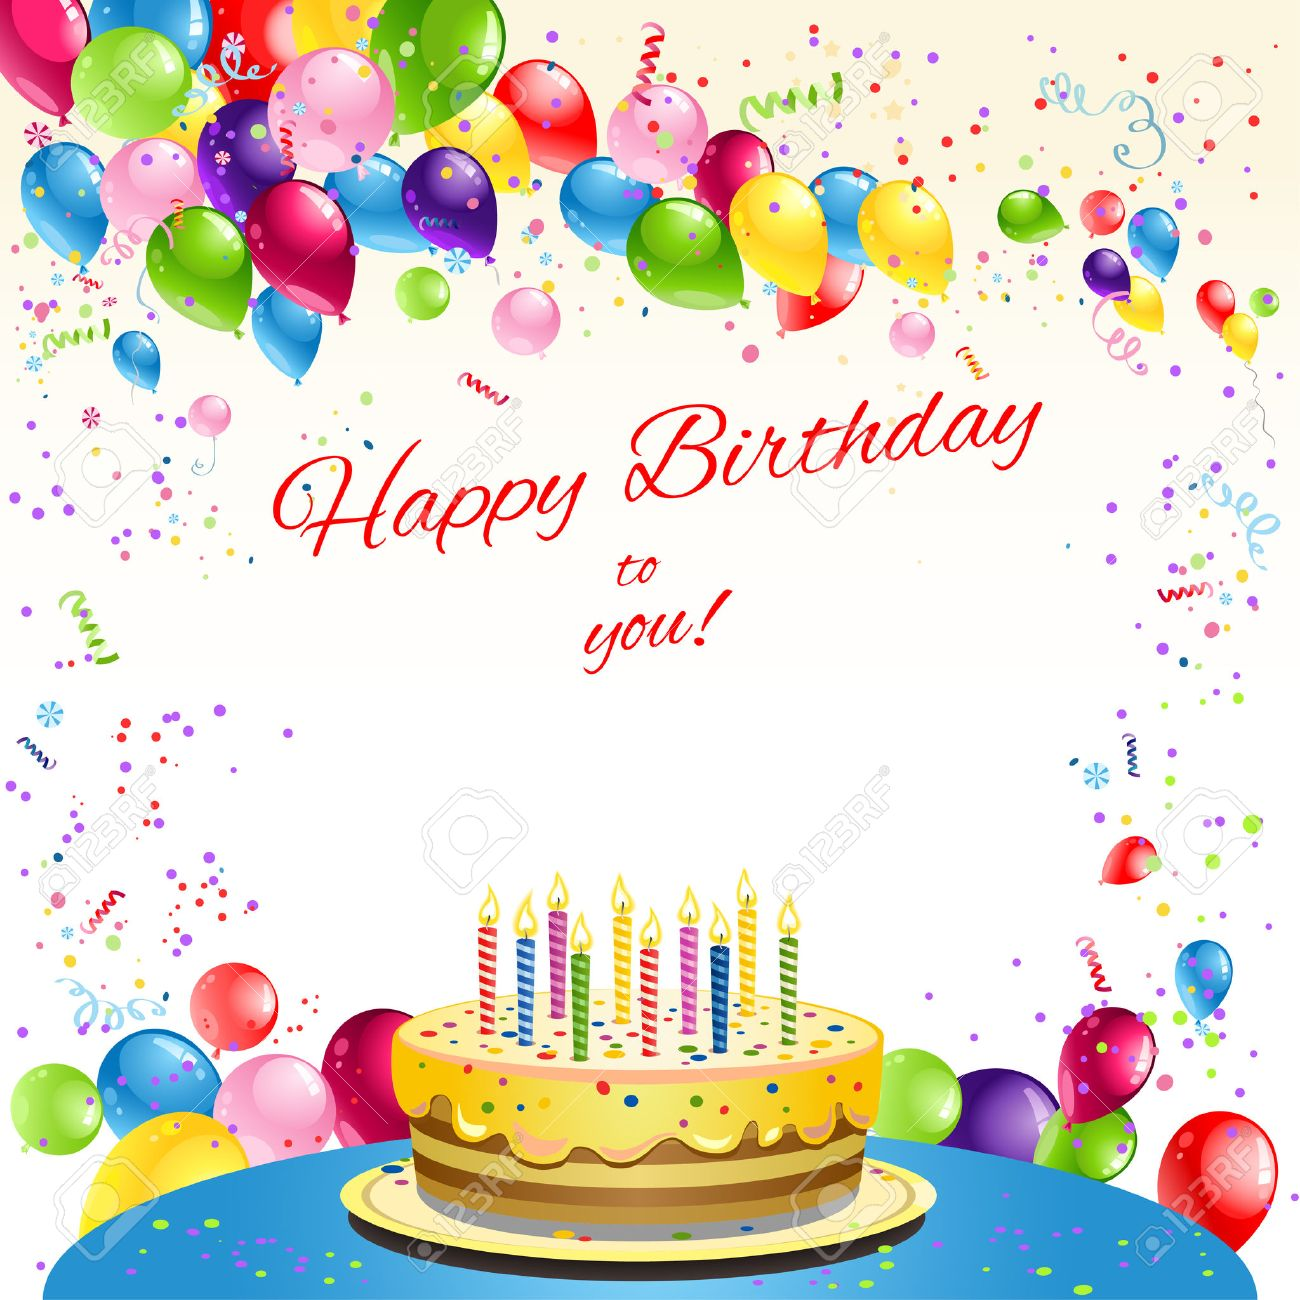 Happy Birthday Card With Cake And Balloons Place For Text – Text for Birthday Card